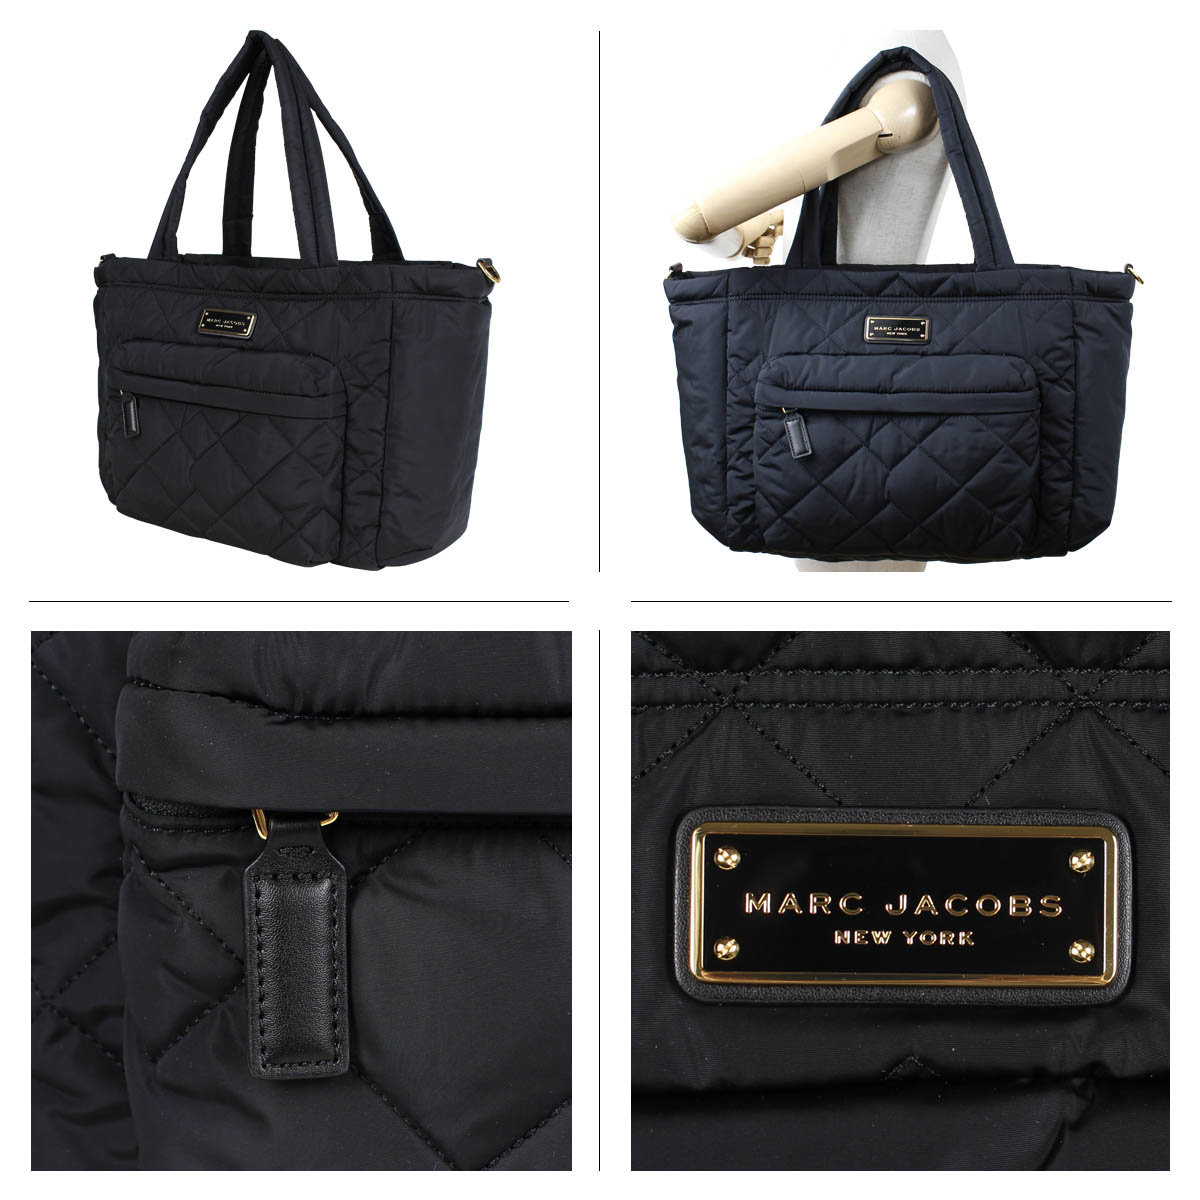 b6712a74c [the arrival long-awaited the latest item of mark by mark Jacobs]. The tote  bag ...